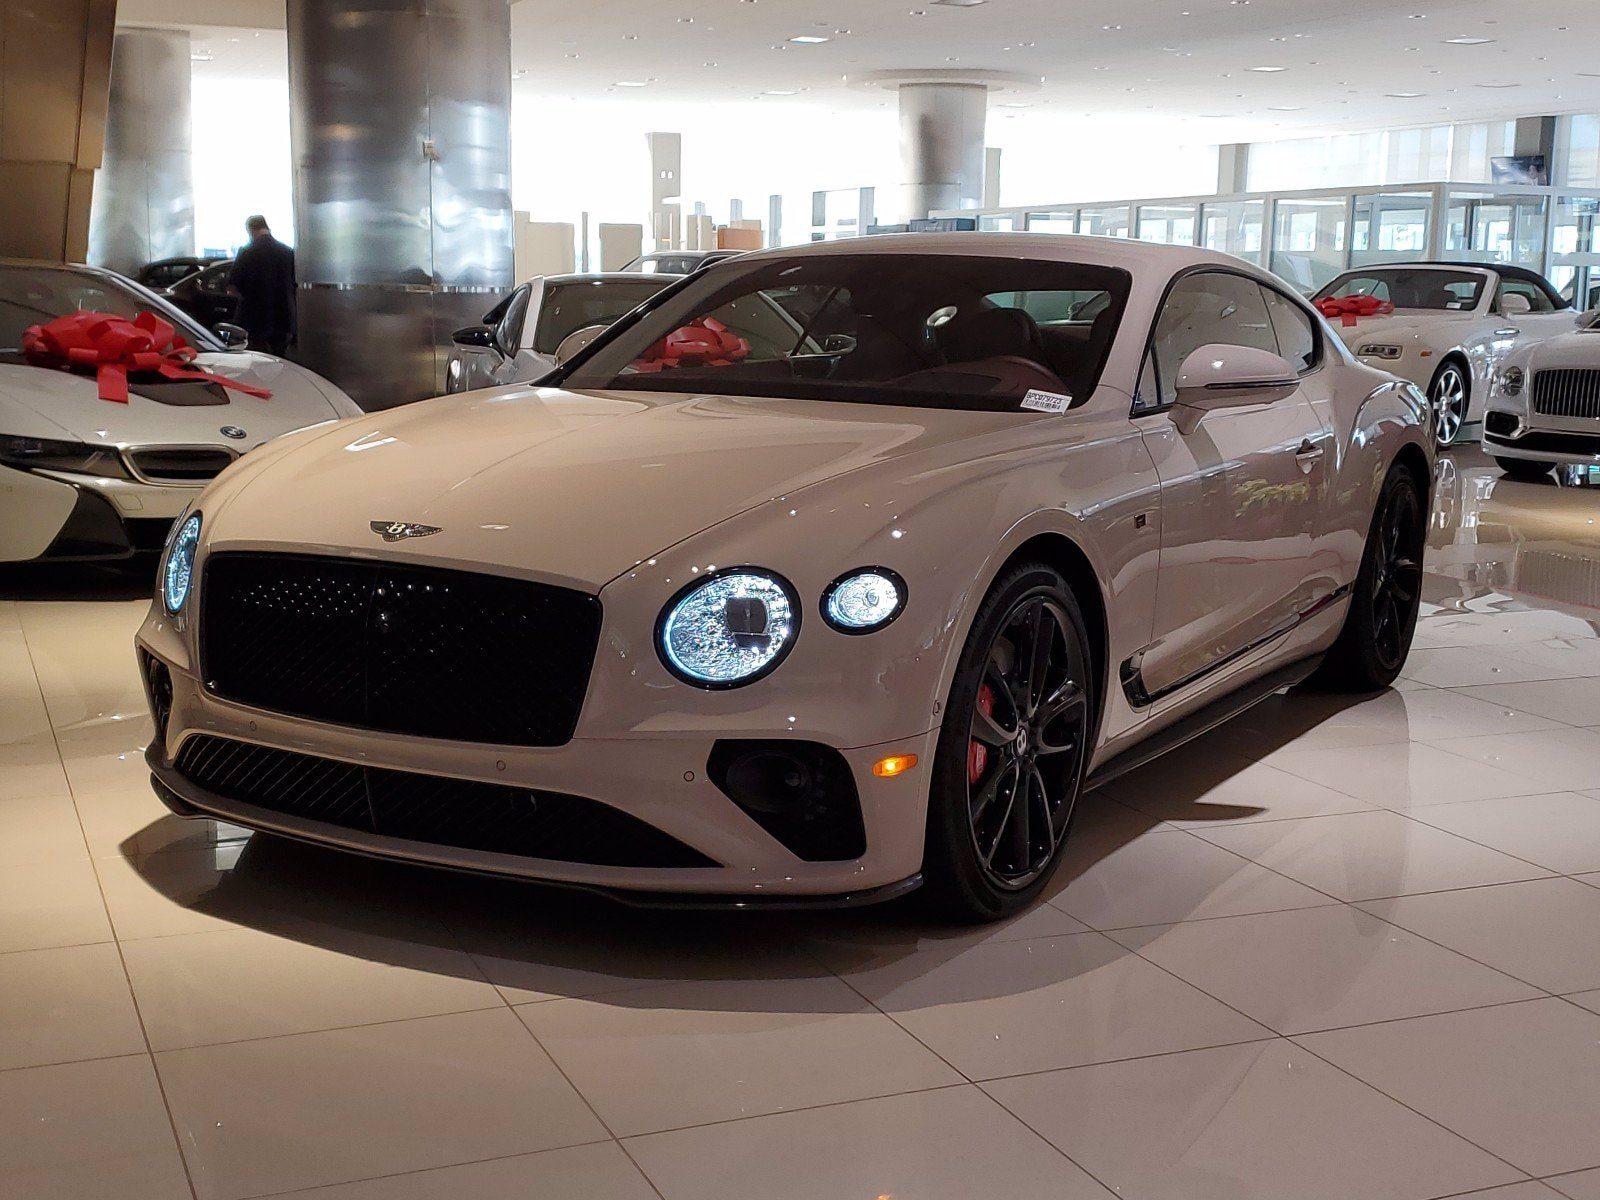 Pre Owned 2020 Bentley Continental Gt For Sale At Braman Bmw Miami Vin Scbcg2zg1lc079723